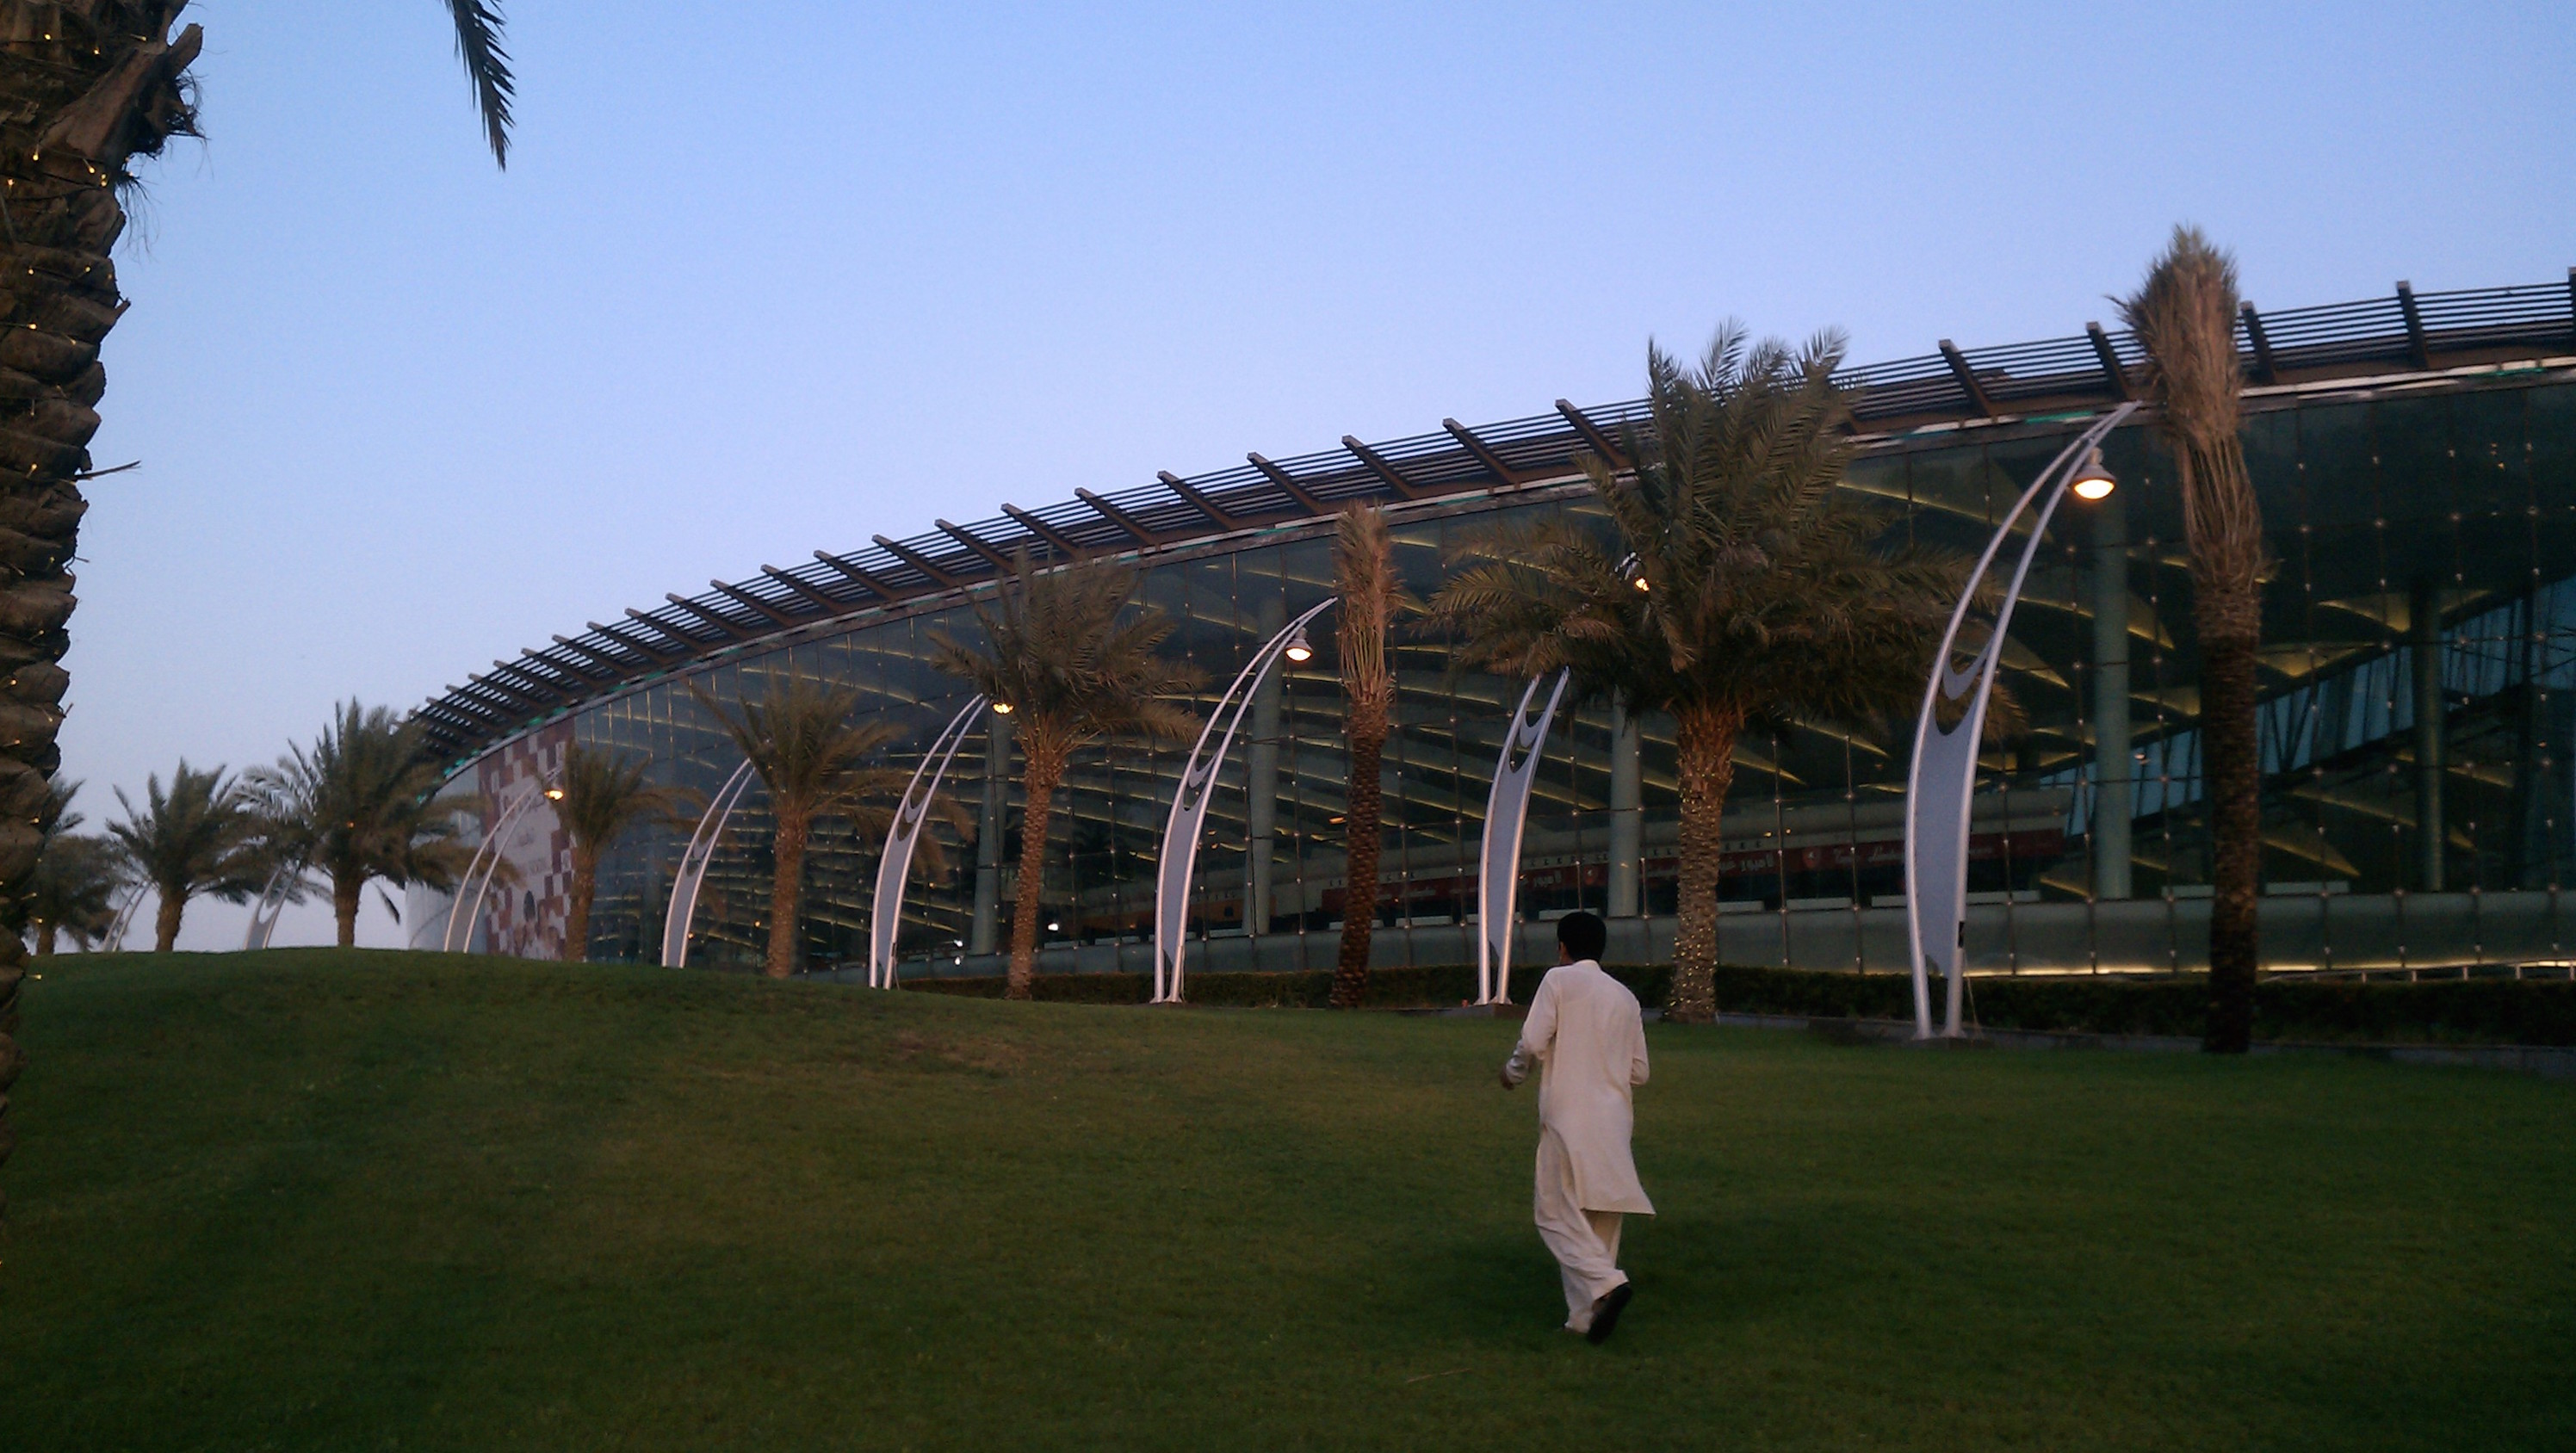 A man walks in front of the Mall of Arabia in Jeddah, Saudi Arabia.